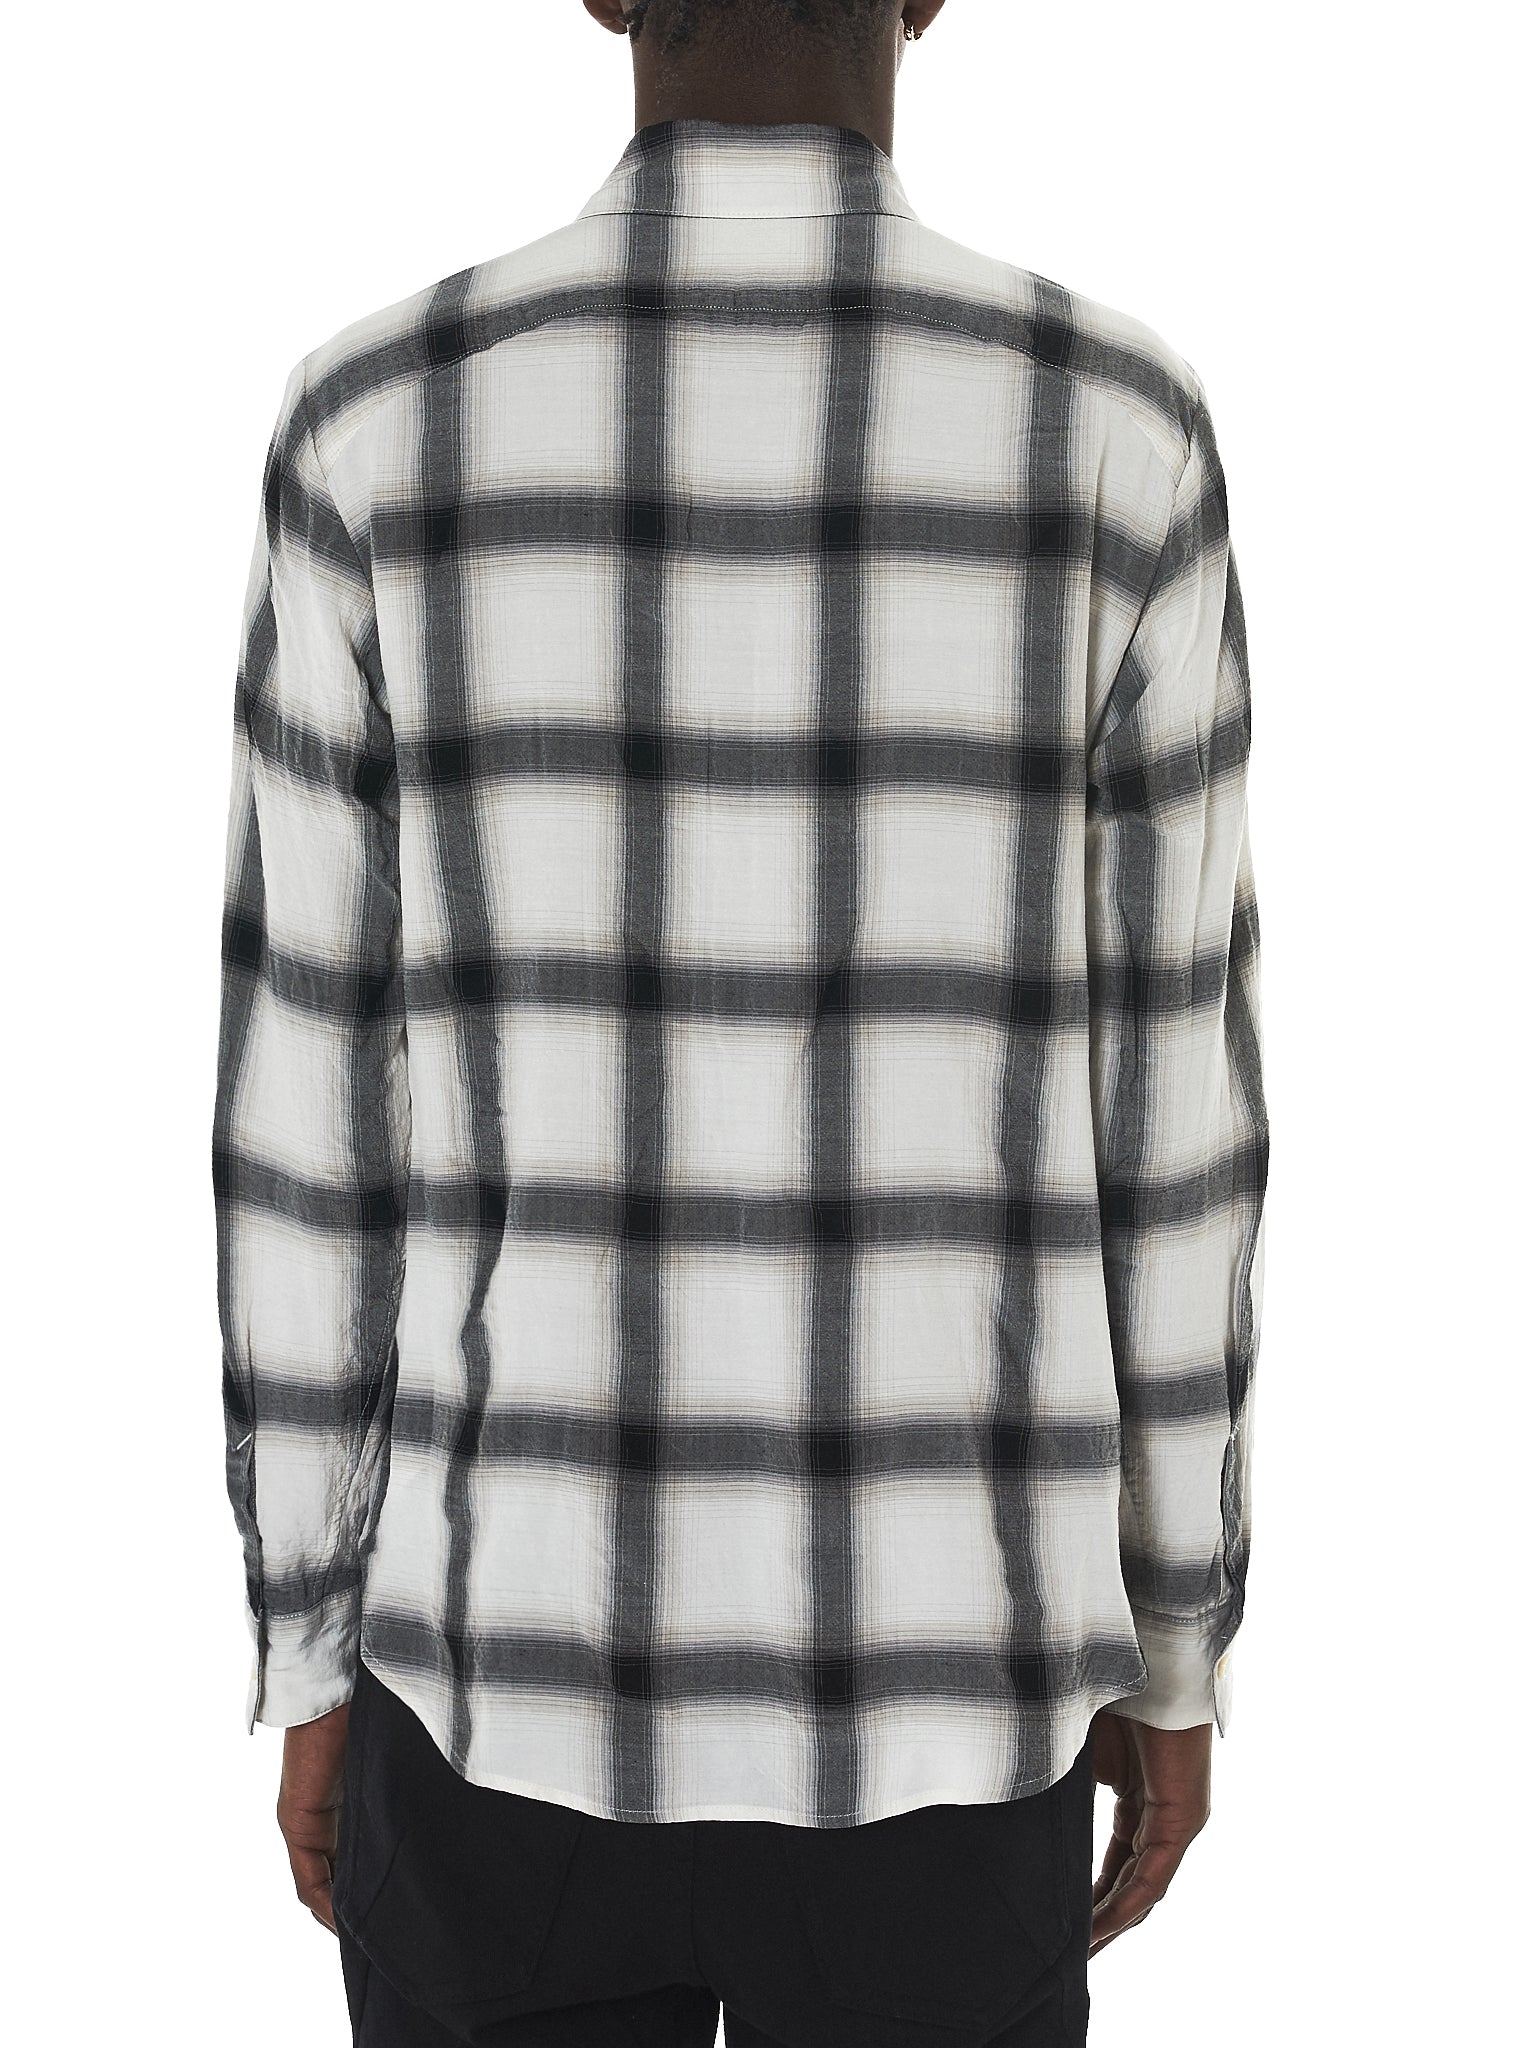 Attachment Kazuyuki Kumagai Plaid Shirt - Hlorenzo Back